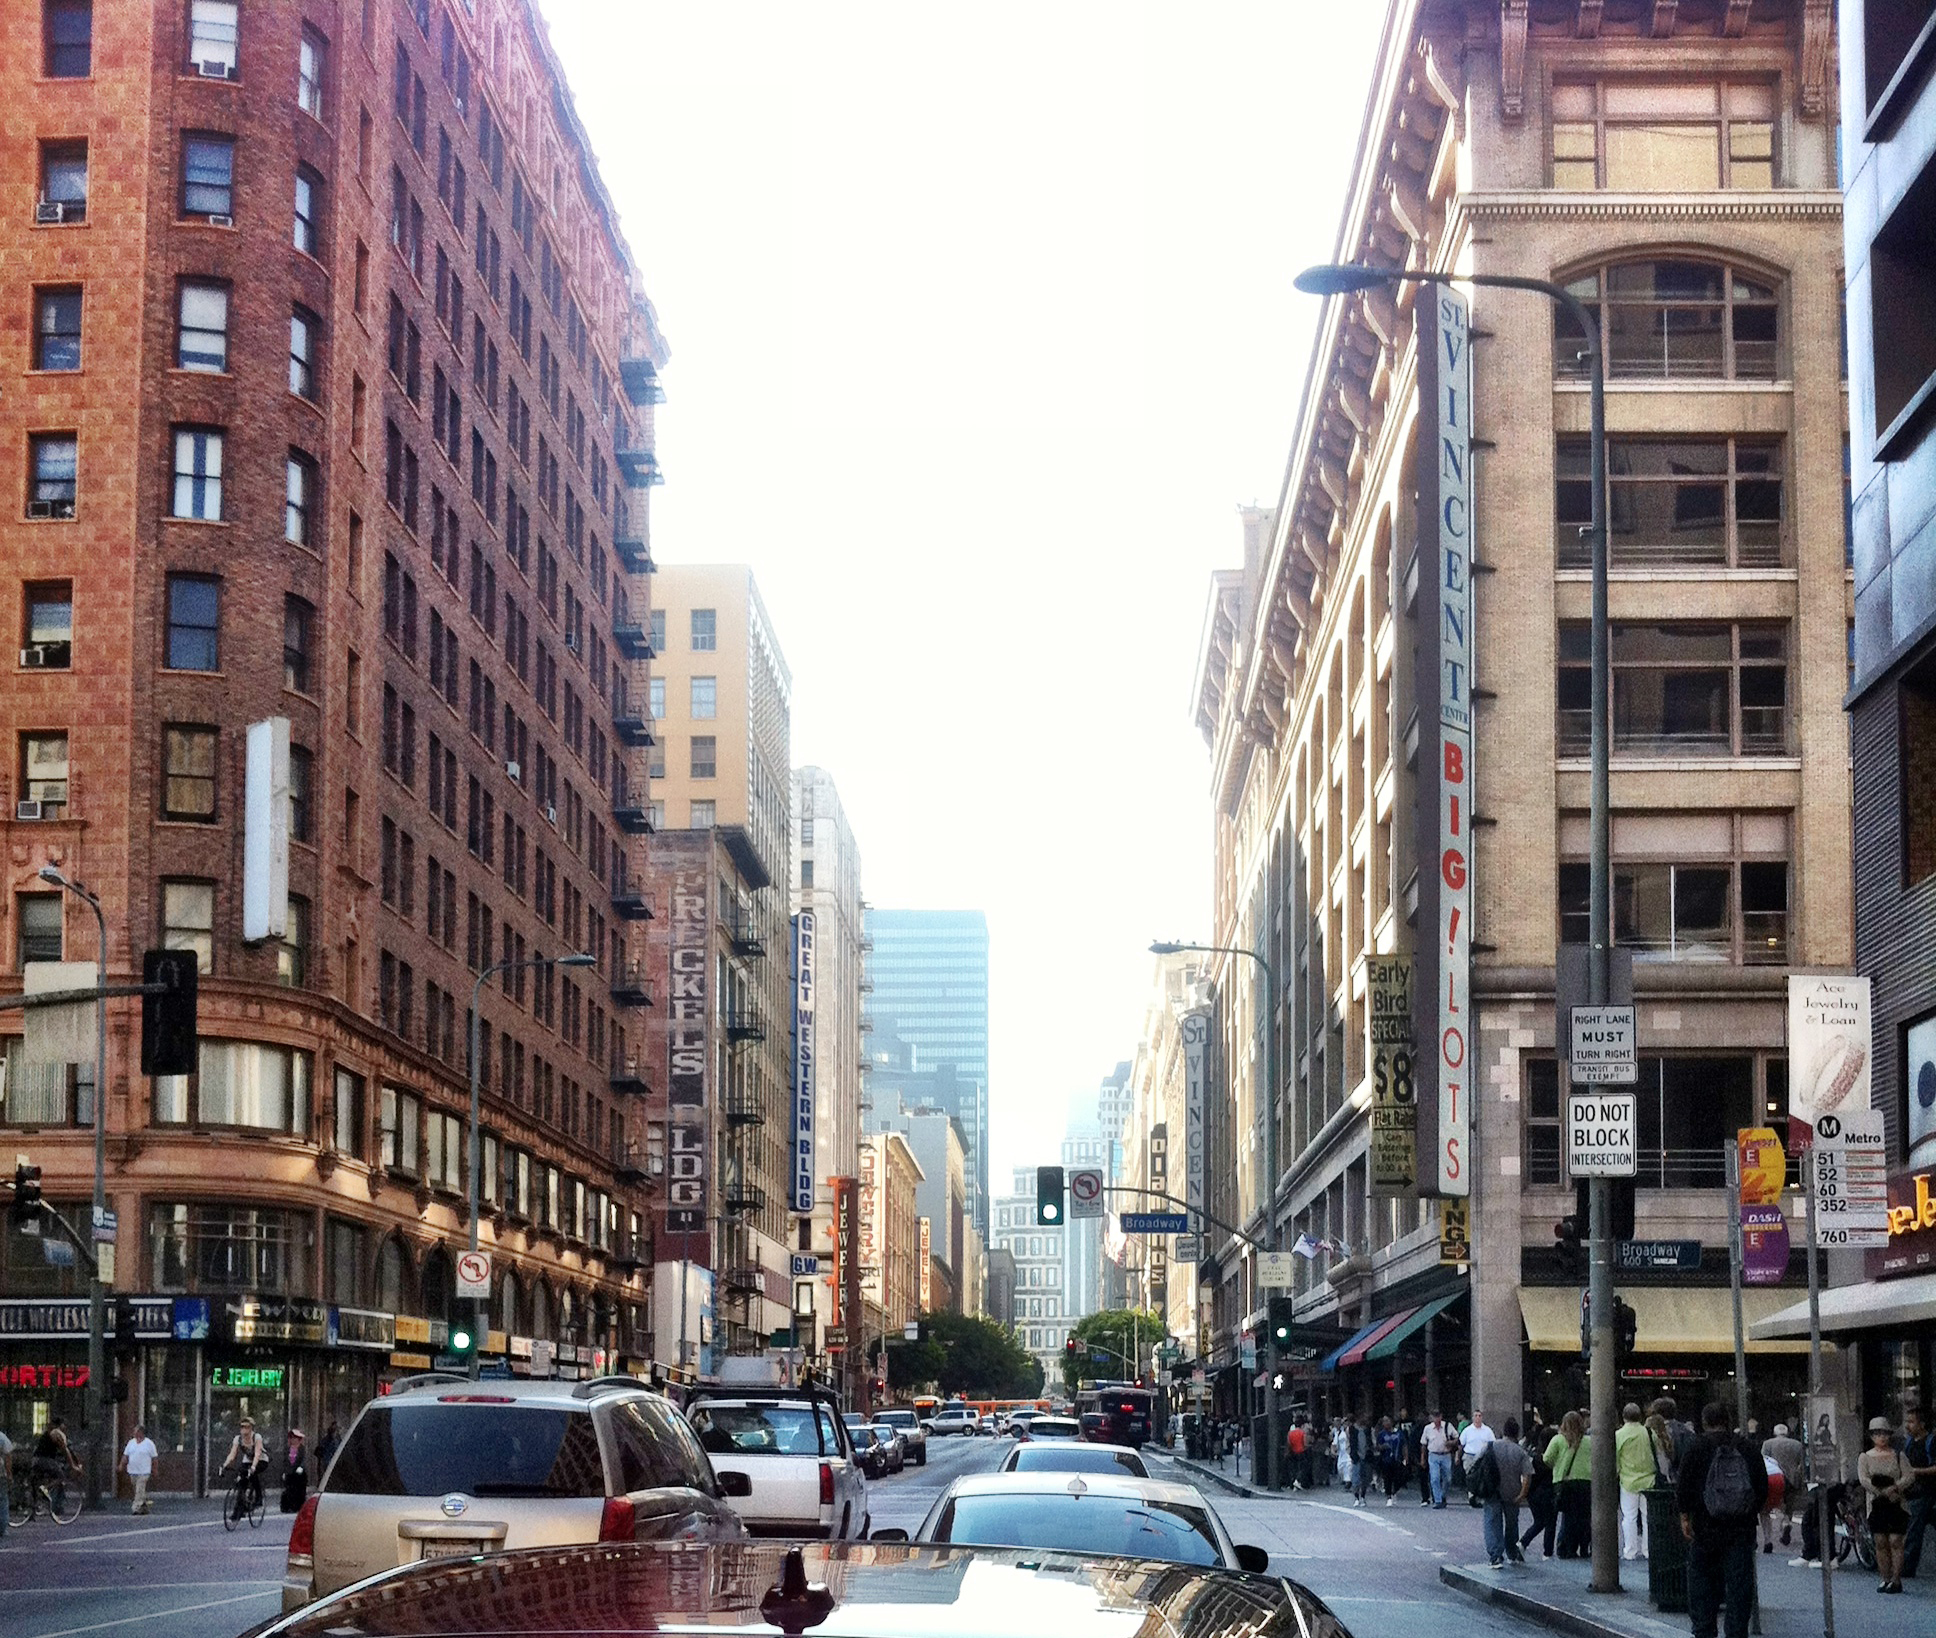 Photo: Downtown LA at 7th / Broadway